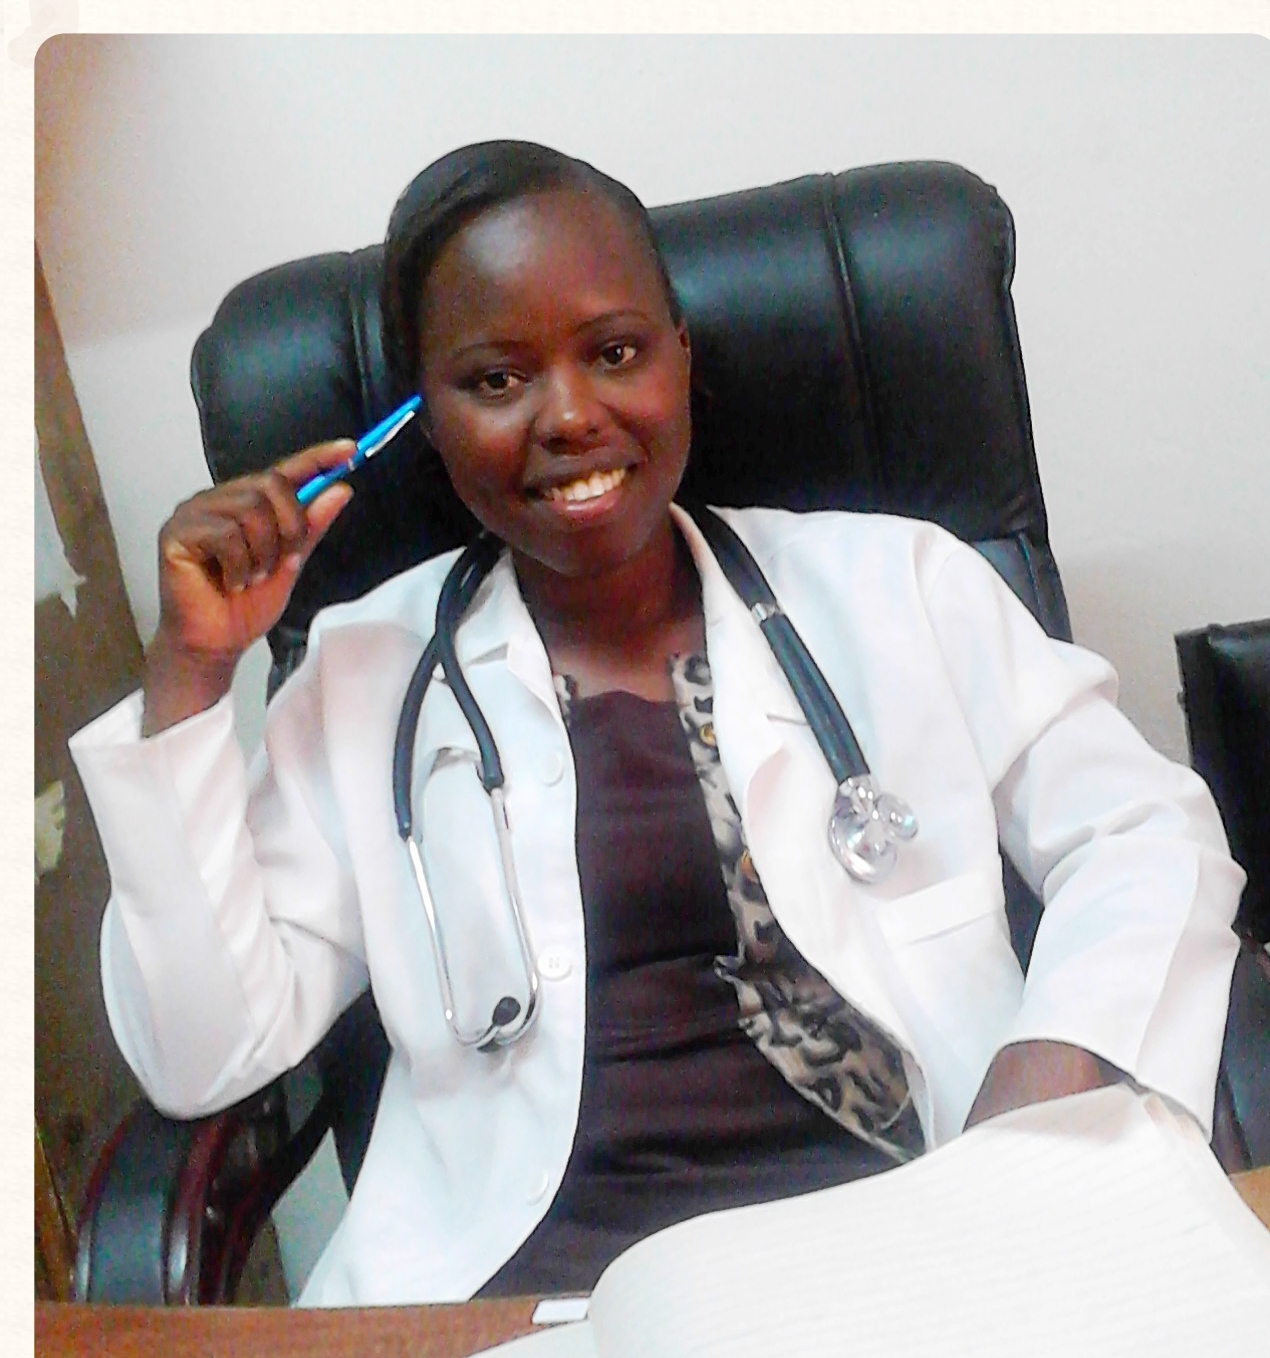 Sanaipei in her new role as Clinical Officer.